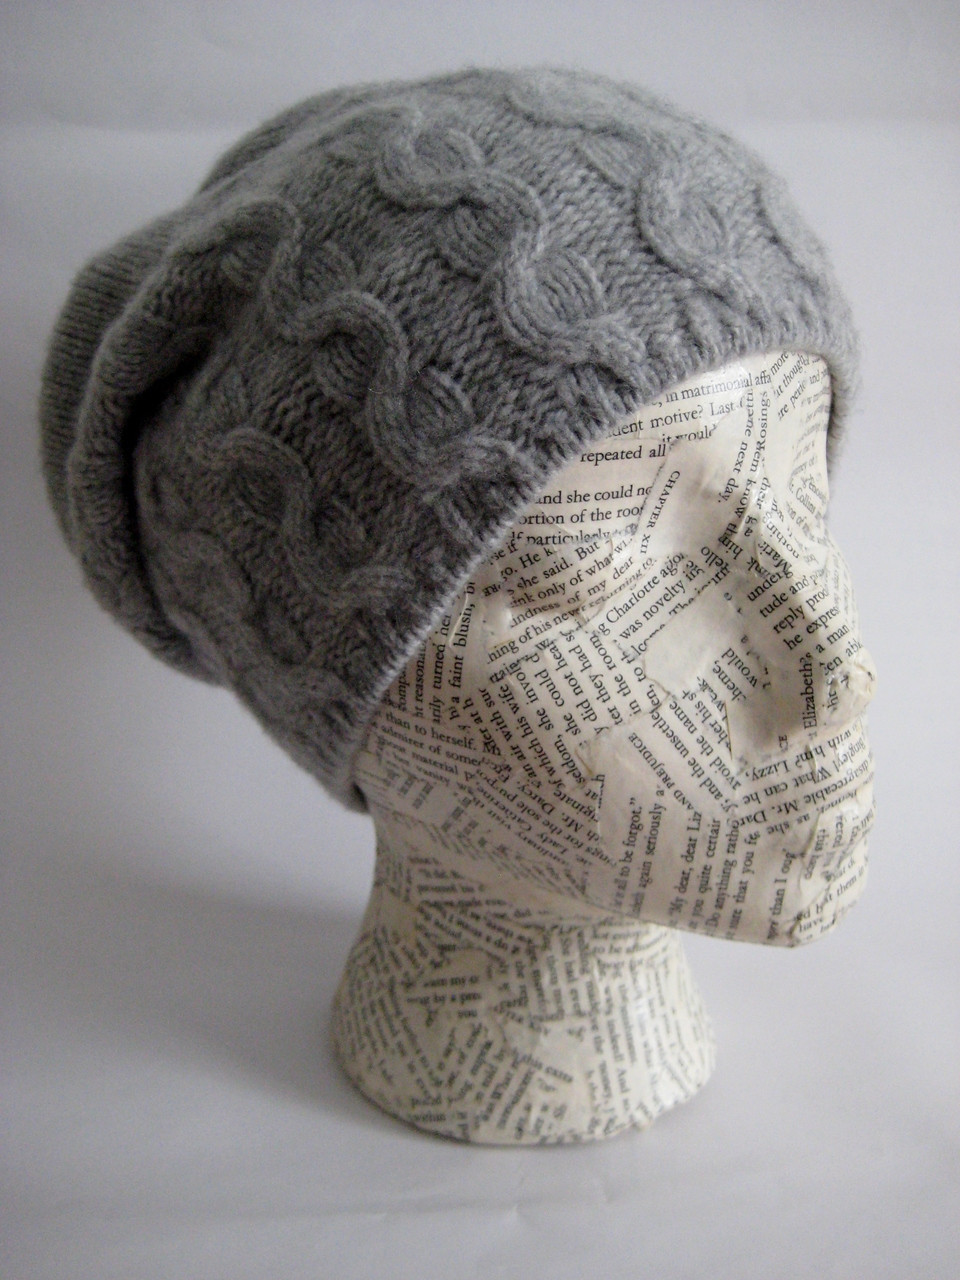 aa3b89dd082 Slouchy cashmere hat for women. Loading zoom